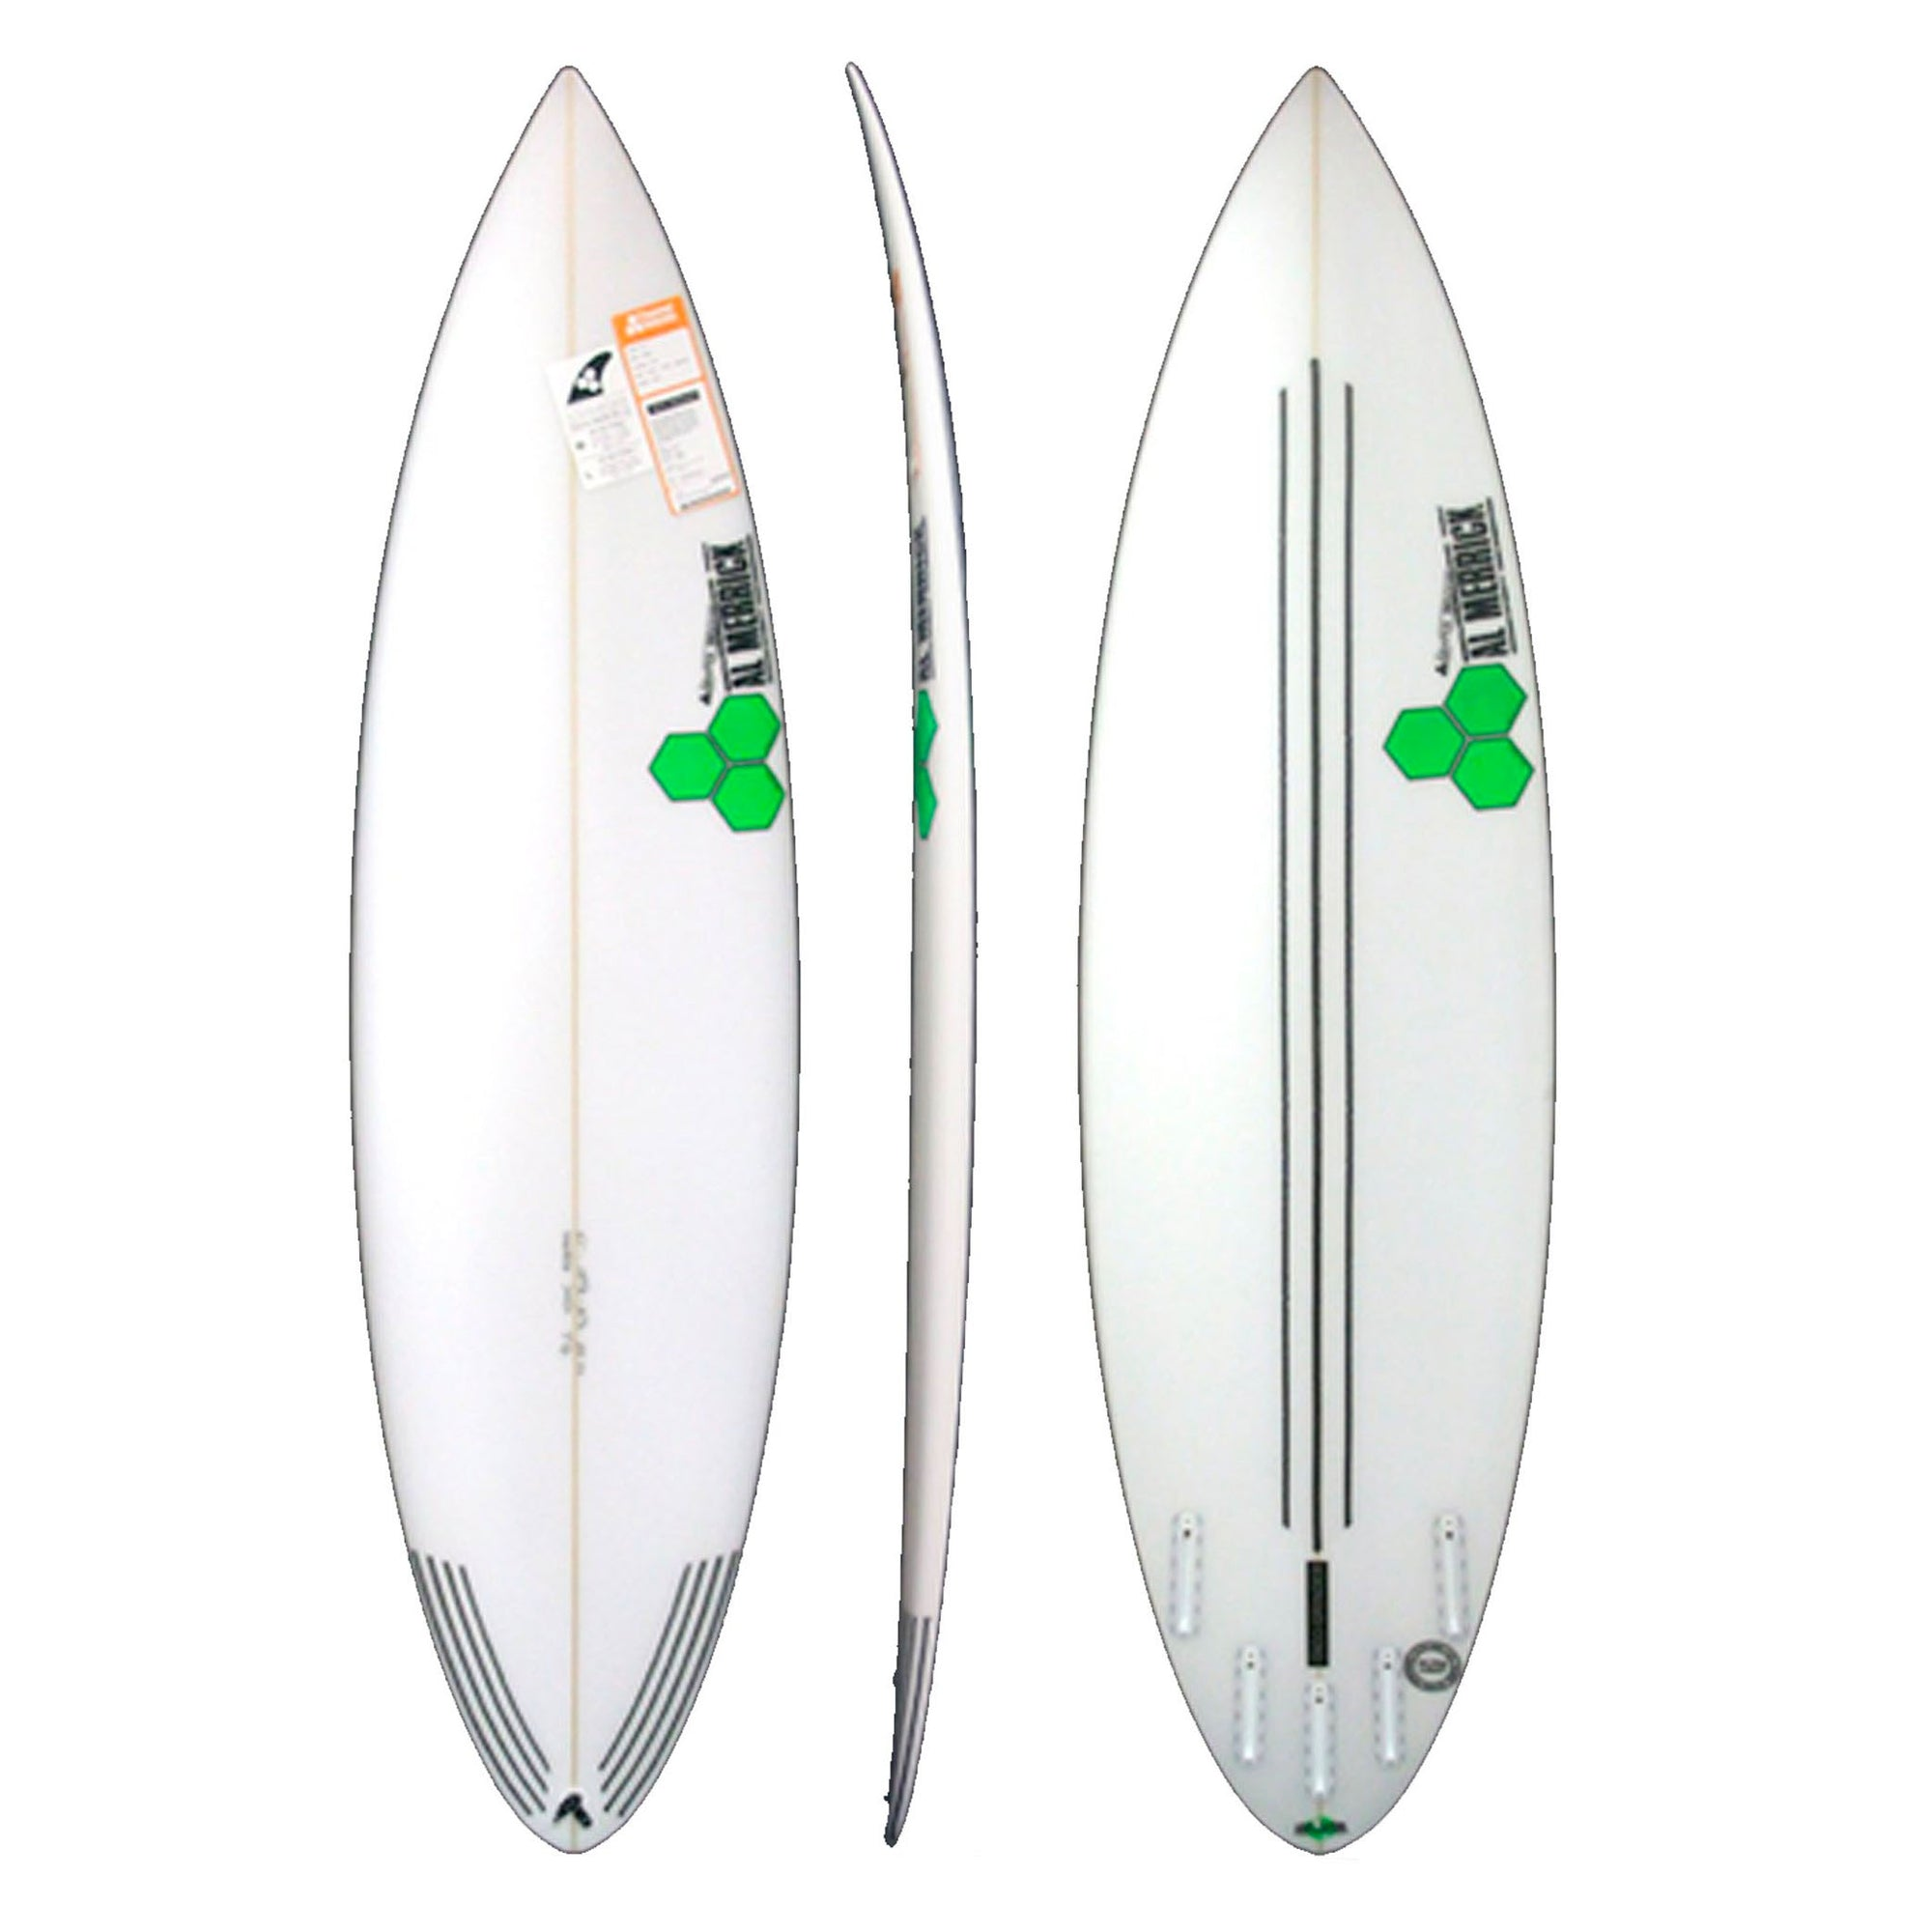 Channel Islands Taco Grinder Surfboard